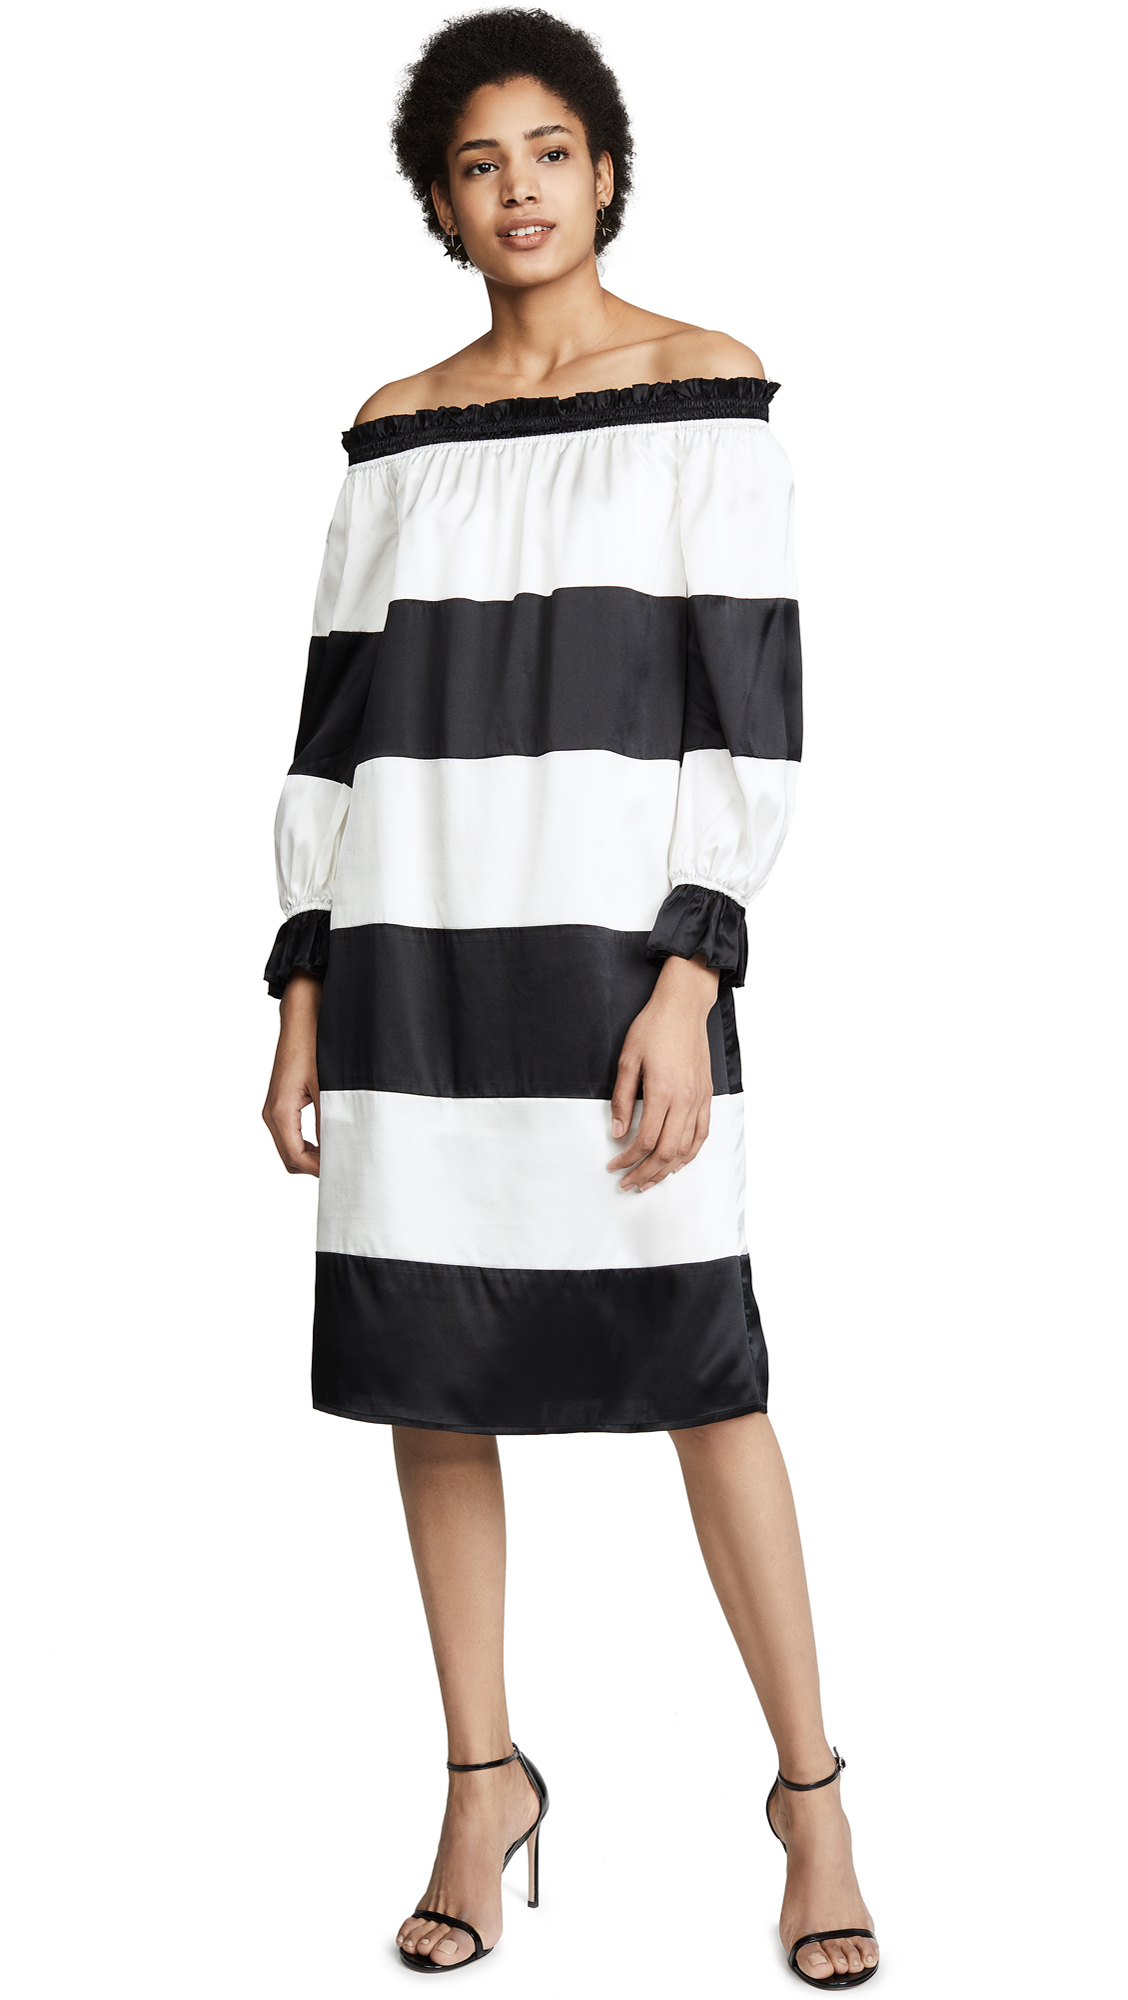 Cynthia Rowley Shanley Striped Off Shoulder Dress - Black/Cream